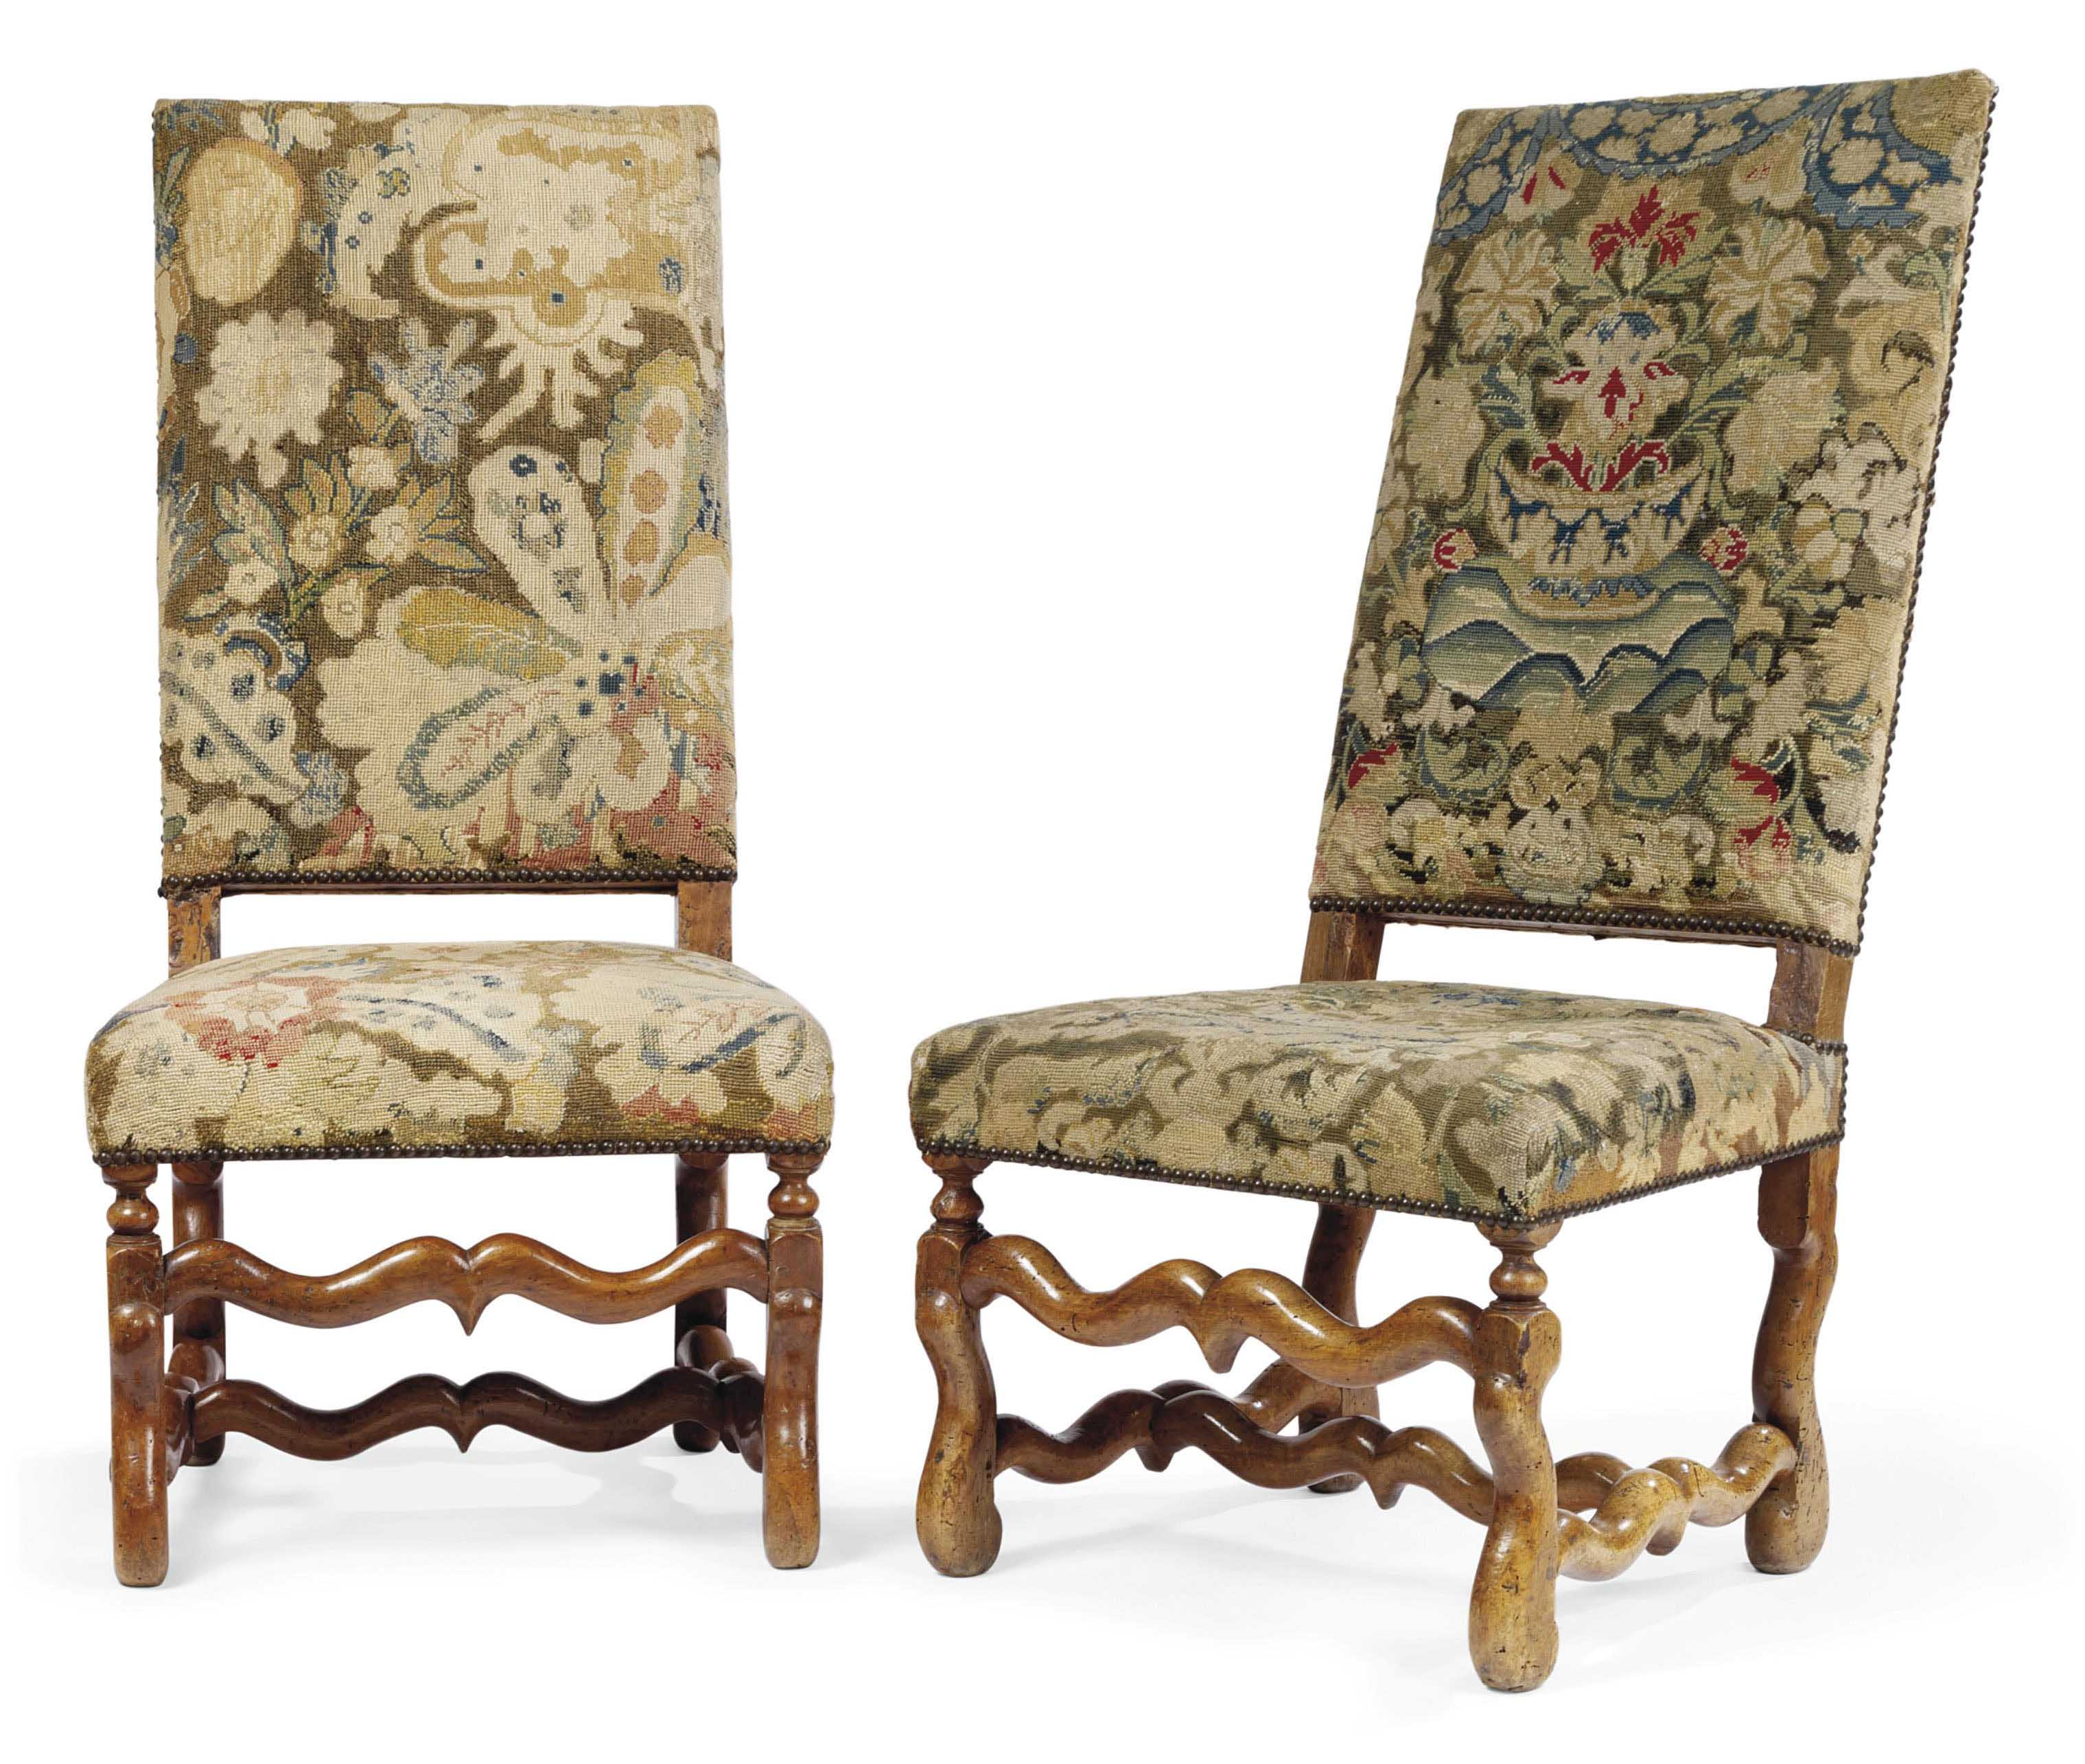 Louis The 14th Furniture A Pair Of Louis Xiv Walnut Side Chairs Early 18th